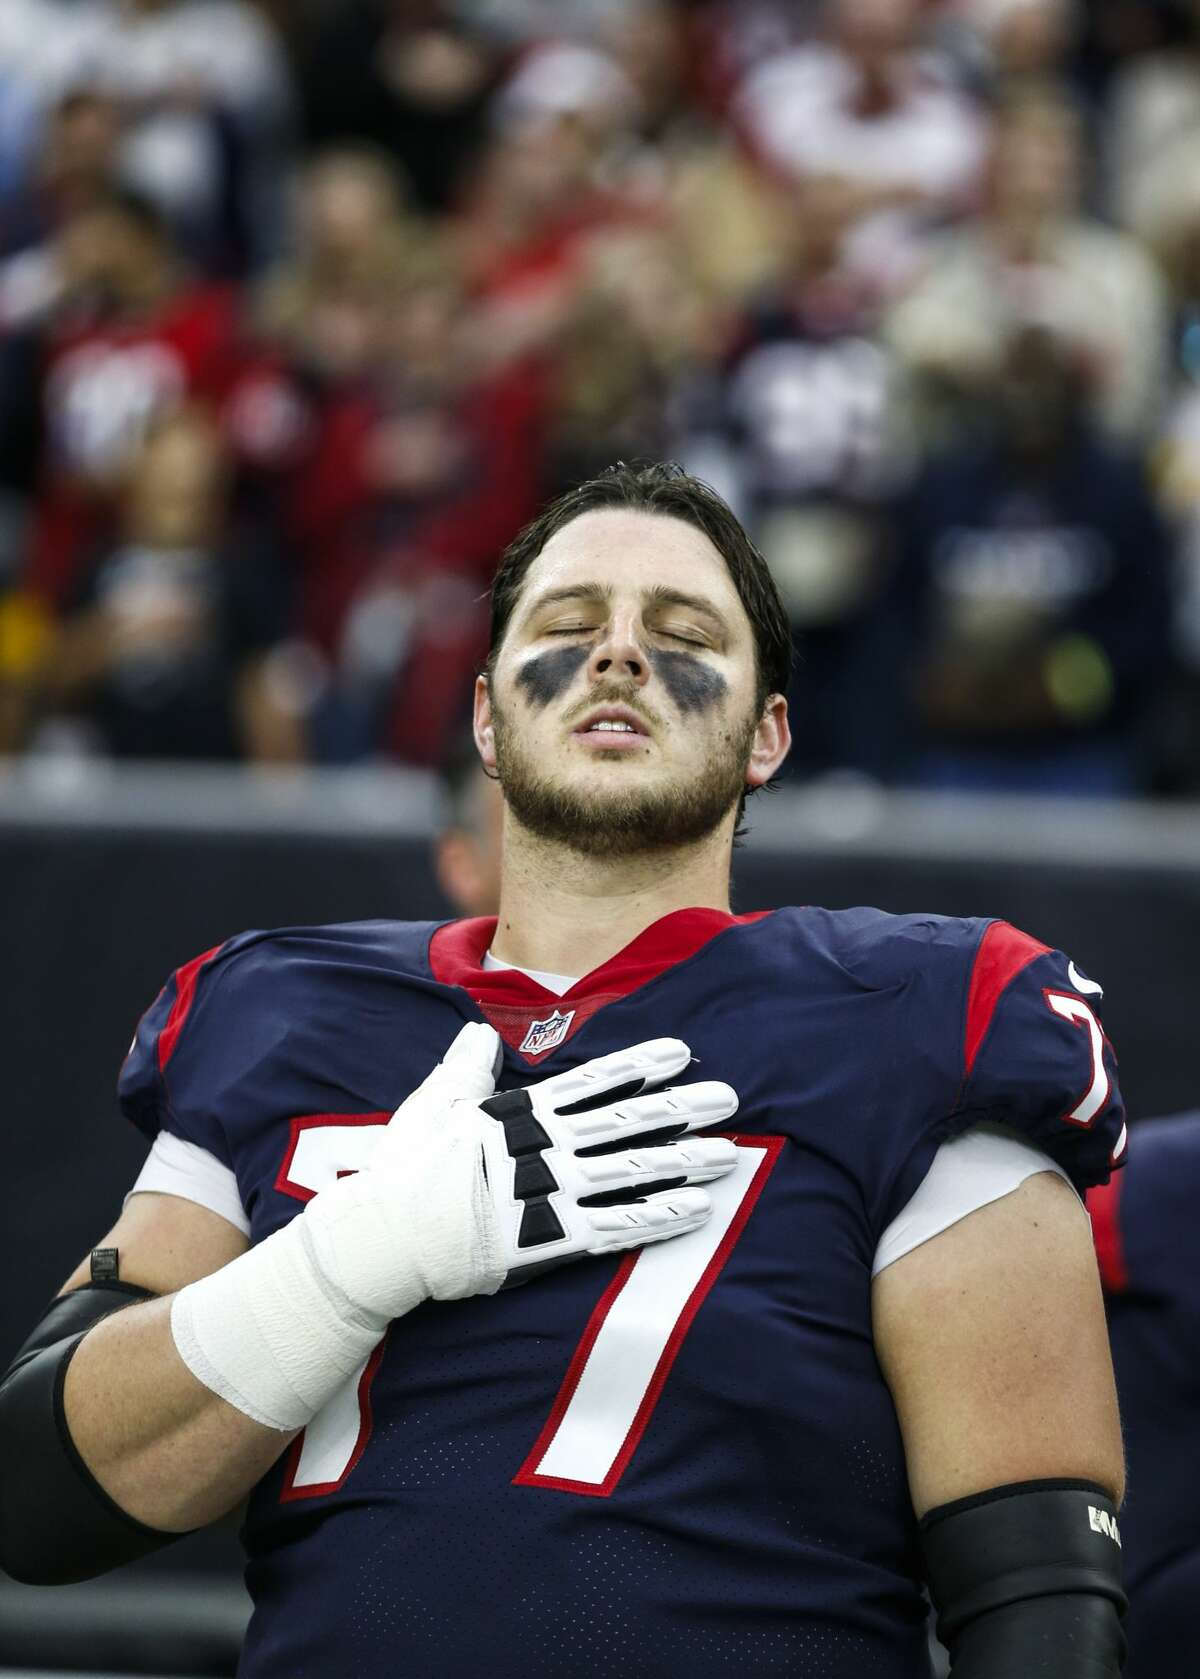 Houston Texans offensive guard David Quessenberry (77) closes his eyes as he stands for the national anthem before an NFL football game against the Pittsburgh Steelers at NRG Stadium on Monday, Dec. 25, 2017, in Houston. ( Brett Coomer / Houston Chronicle )